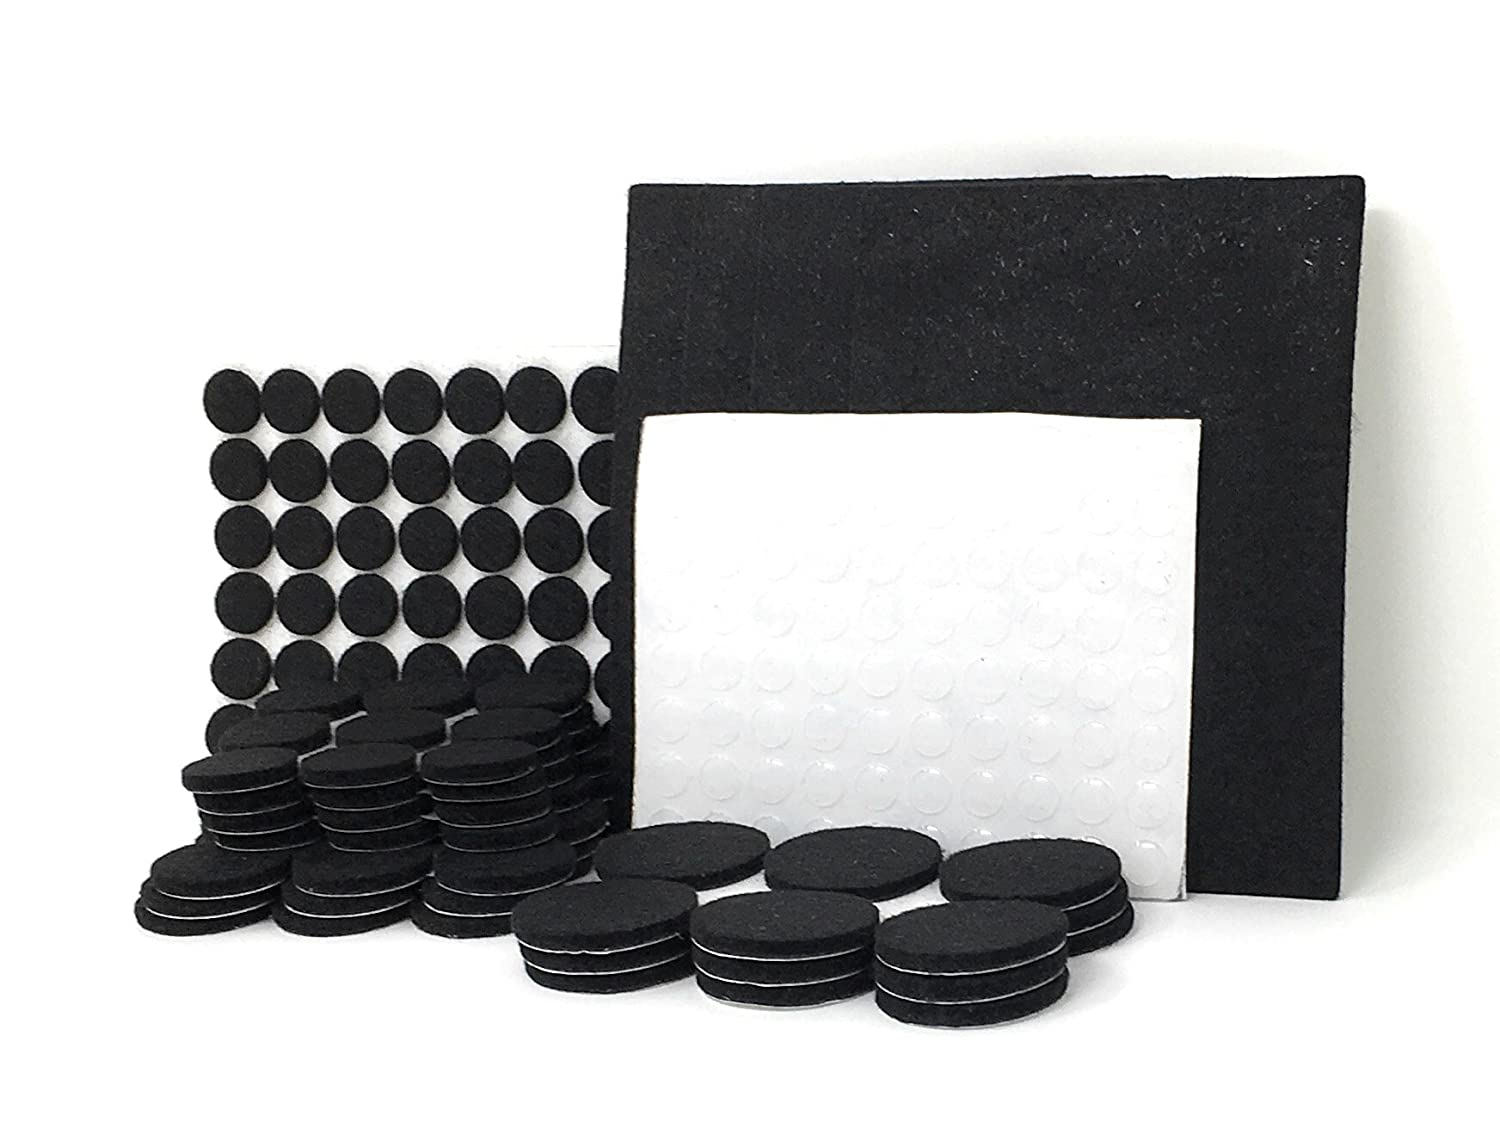 Felt Furniture Pads for Hard Surfaces, Premium Heavy Duty Self Adhesive Bundle Protect Hardwood Floors Laminate and Tile (207 Pieces) + Noise Dampening Clear Rubber Bumpers, Black